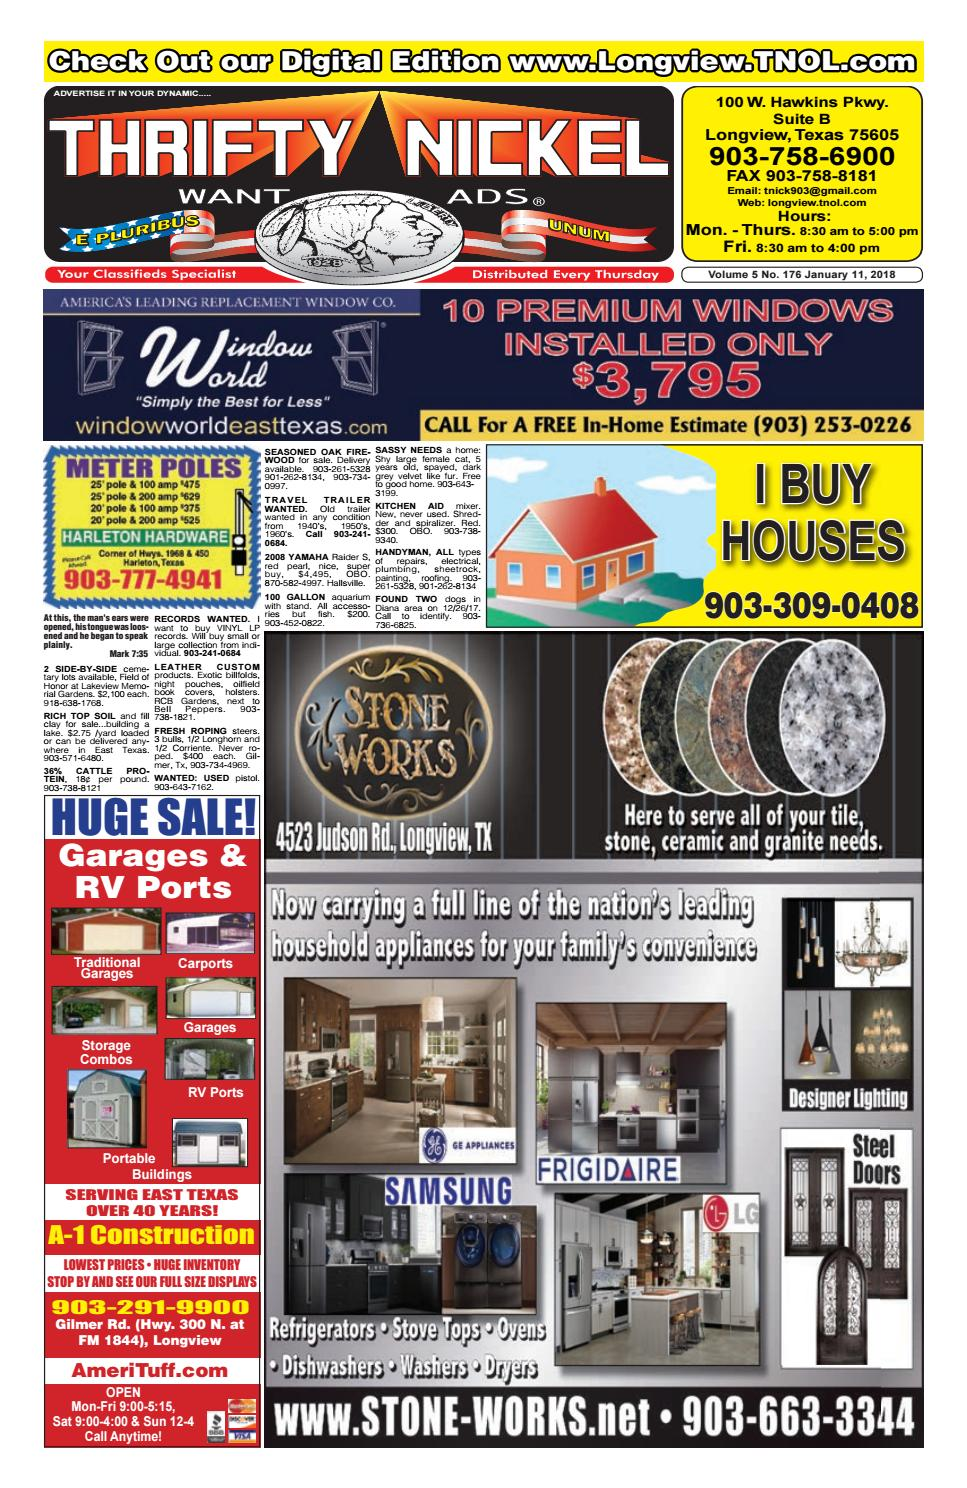 1 11 18 longview edition by American Classifieds/Thrifty Nickel - issuu